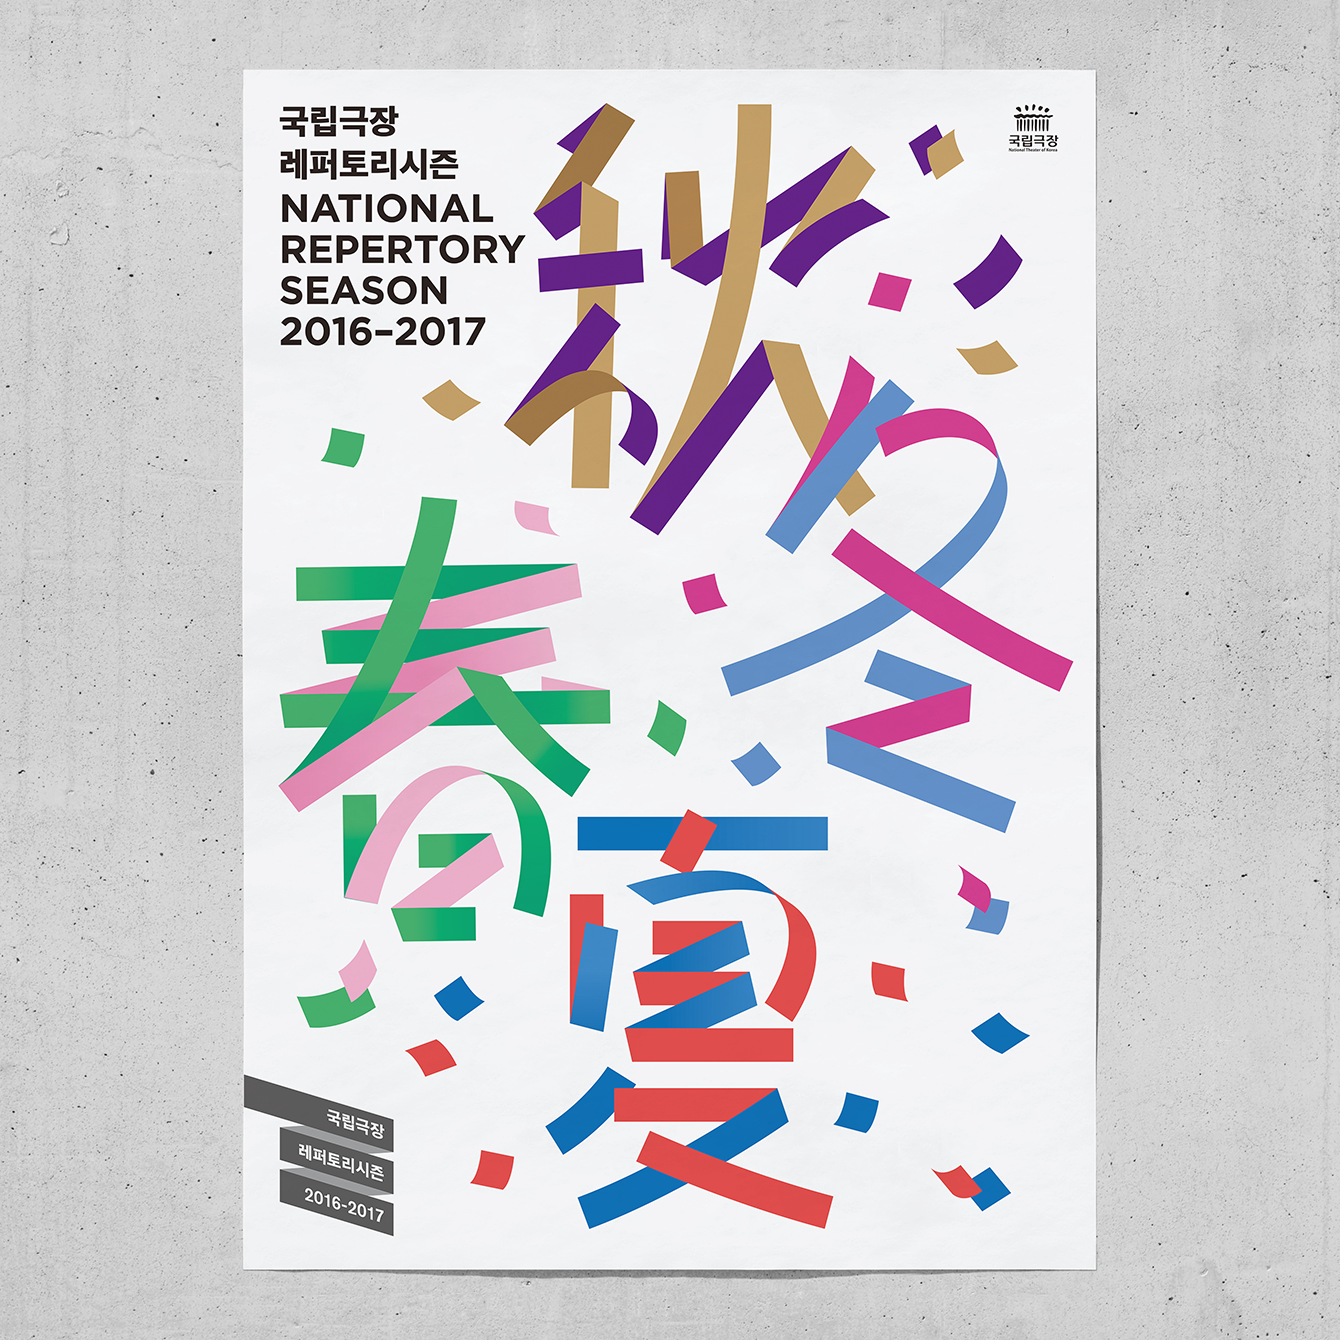 Poster design inspiration 2017 - Poster For National Theater Of Korea Repertory Season 2016 2017 Studio Fnt